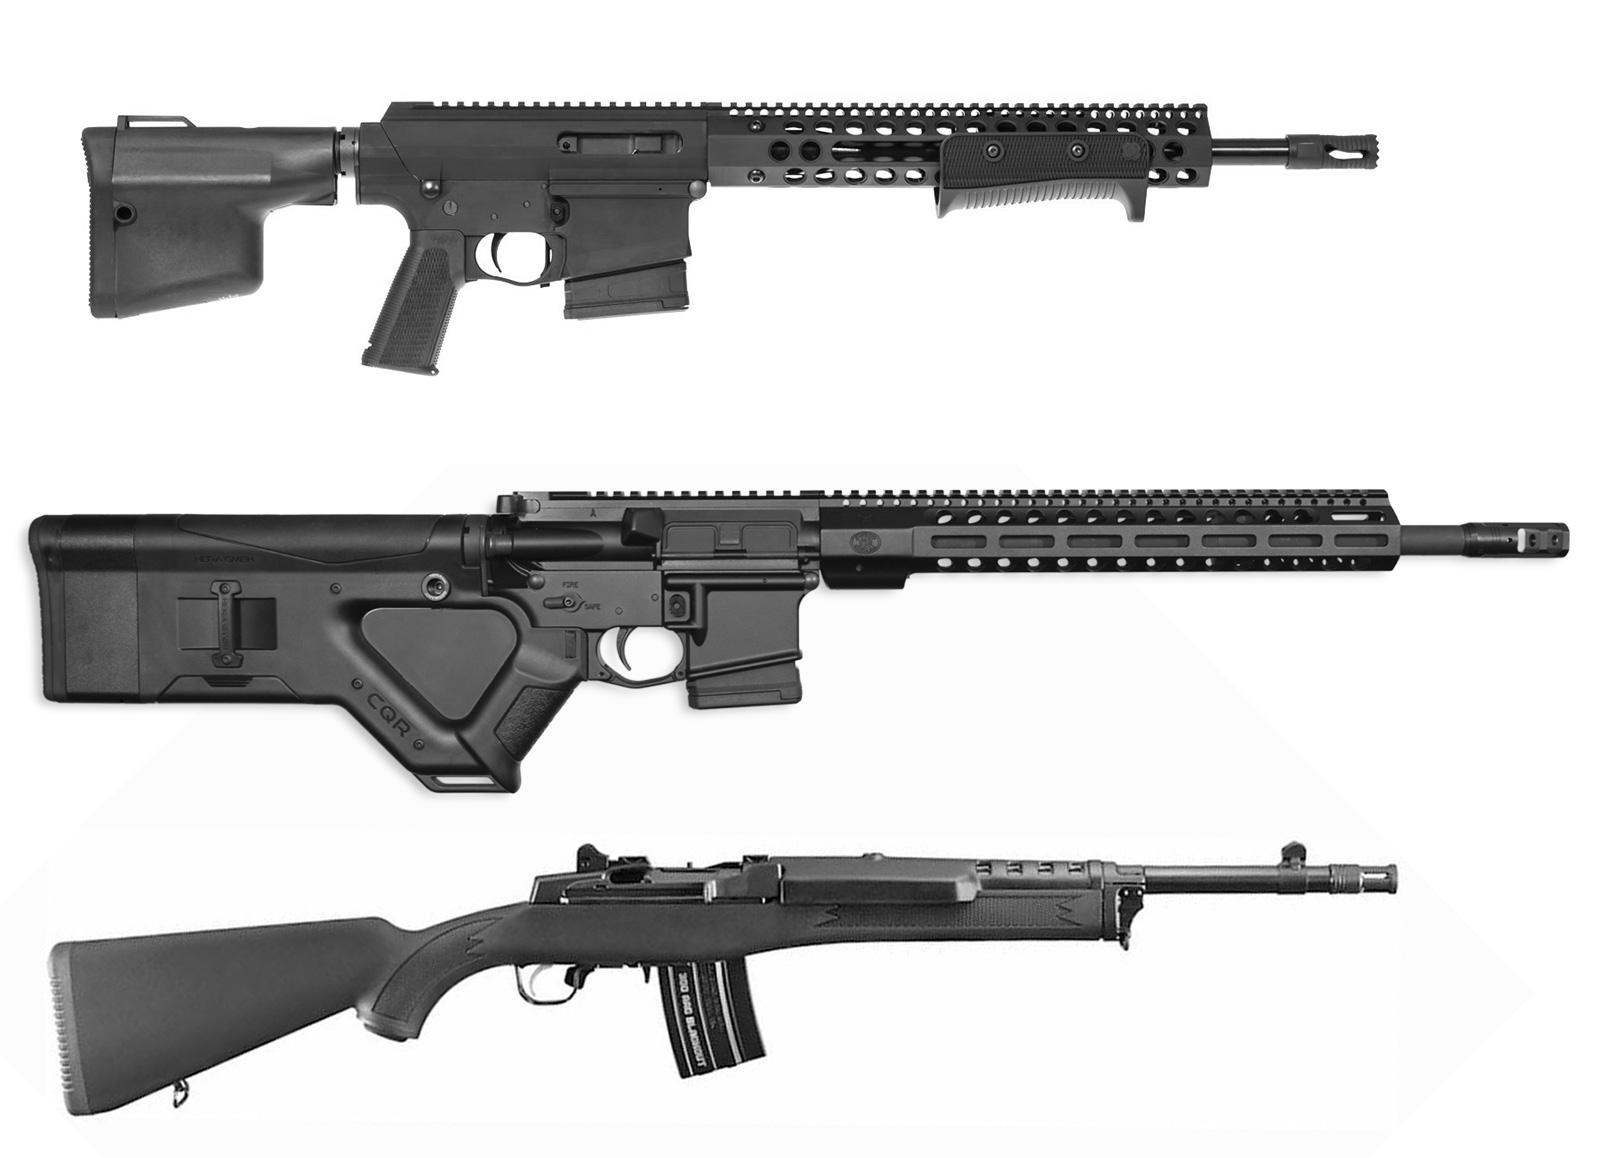 AWB Compliant AR-15 rifles